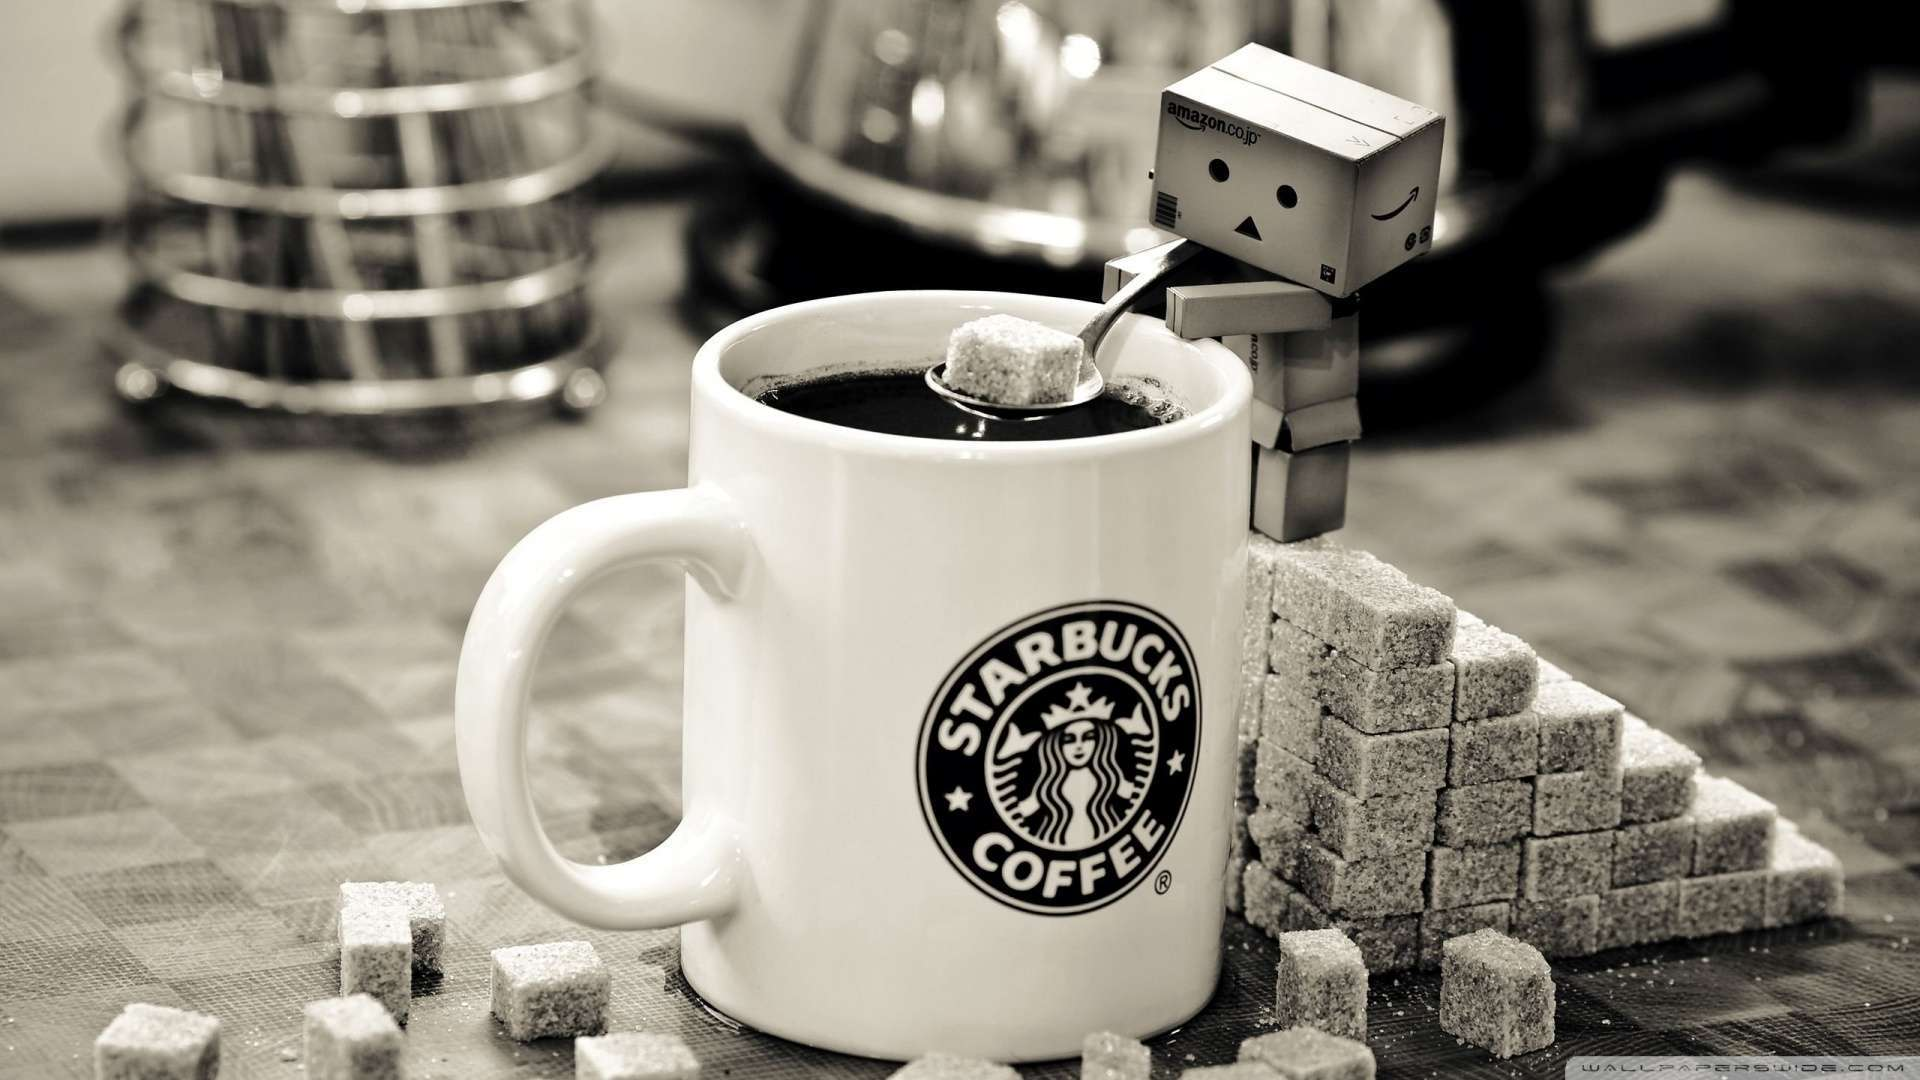 Danbo-Starbucks-Coffee-1080p-HD-wallpaper-wpc5803923